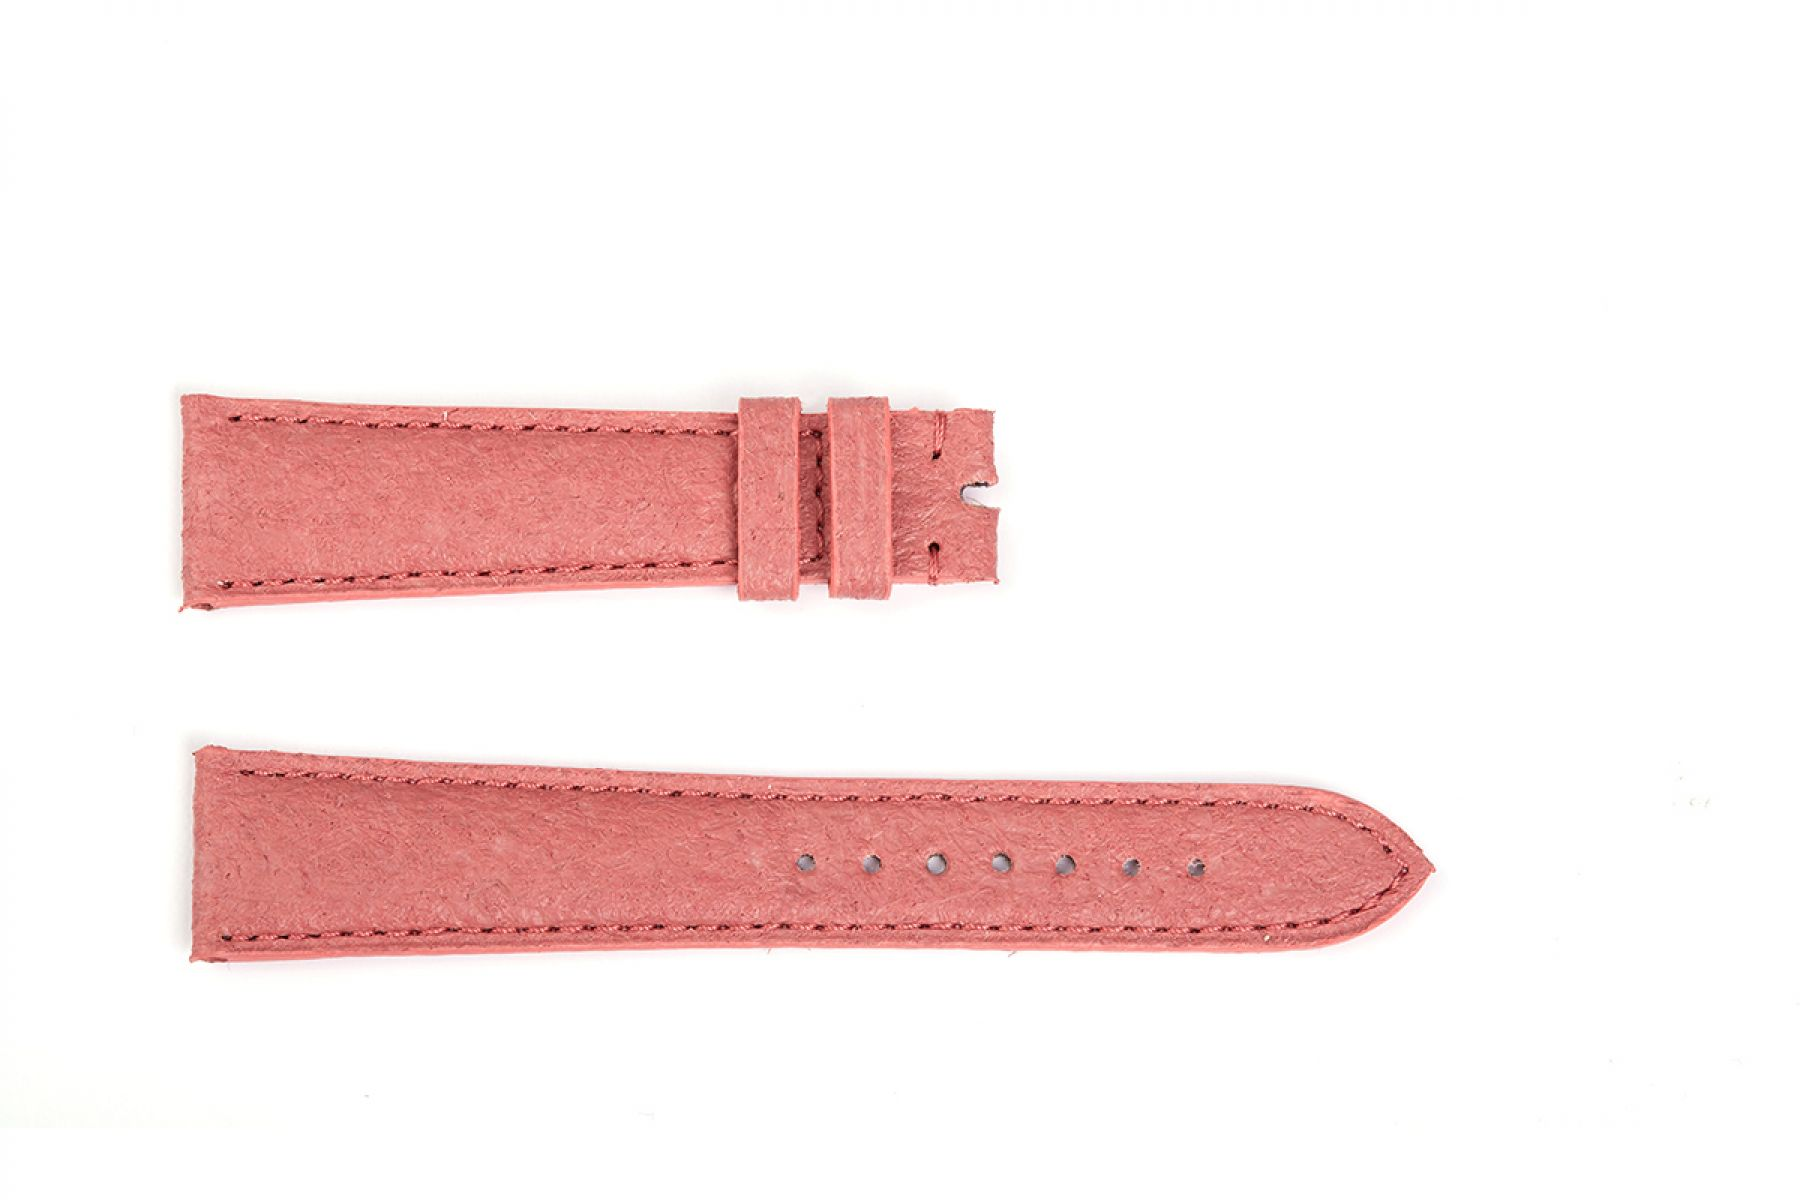 Rosa Vintage Pinatex Strap 16mm, 18mm, 19mm, 20mm, 21mm, 22mm General style